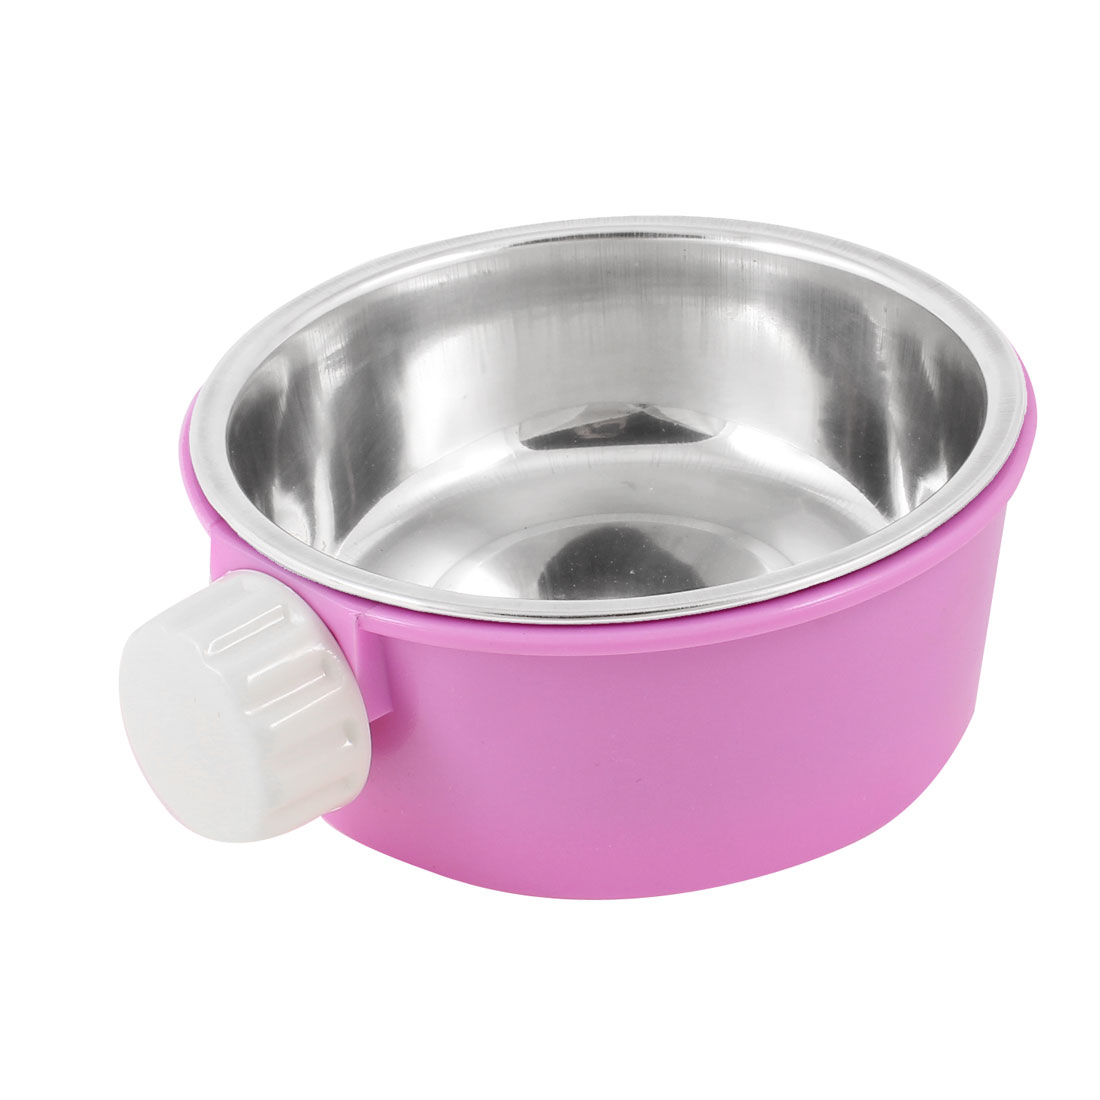 Round Food Water Feeder Fixed Bowl Dish Light Purple 2 in 1 for Cage Pet Cat